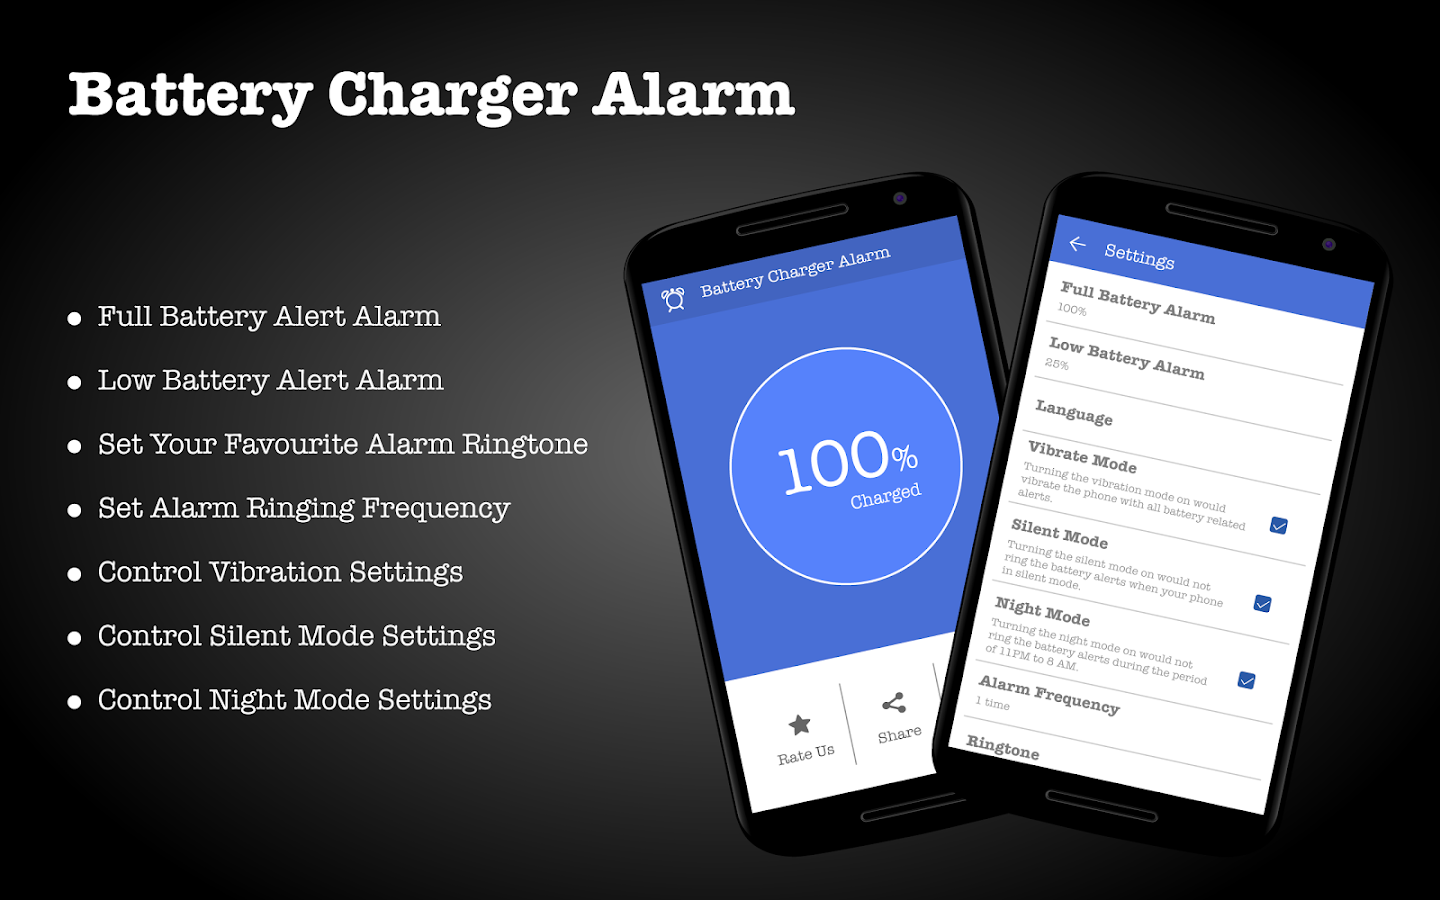 Battery Charger Alarm Screenshot 4